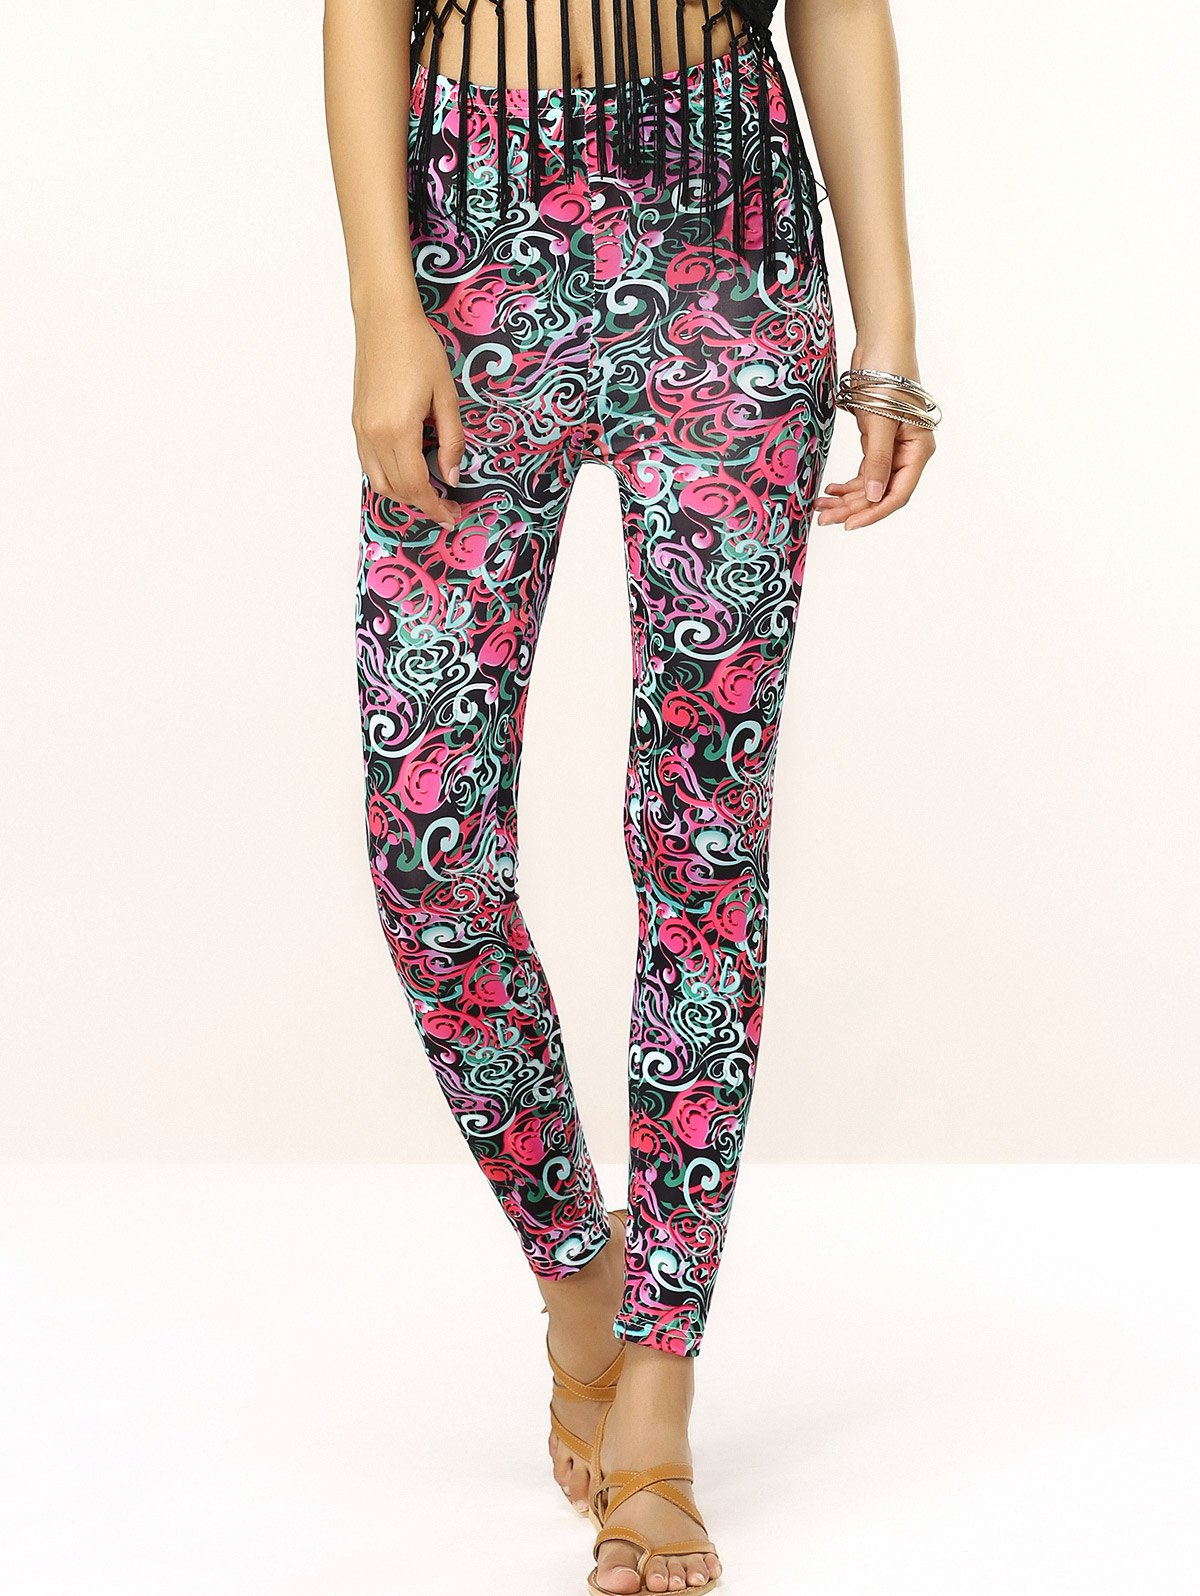 Chic Elastic Waist Ornate Print Skinny Slimming Women's Pants - ONE SIZE COLORMIX